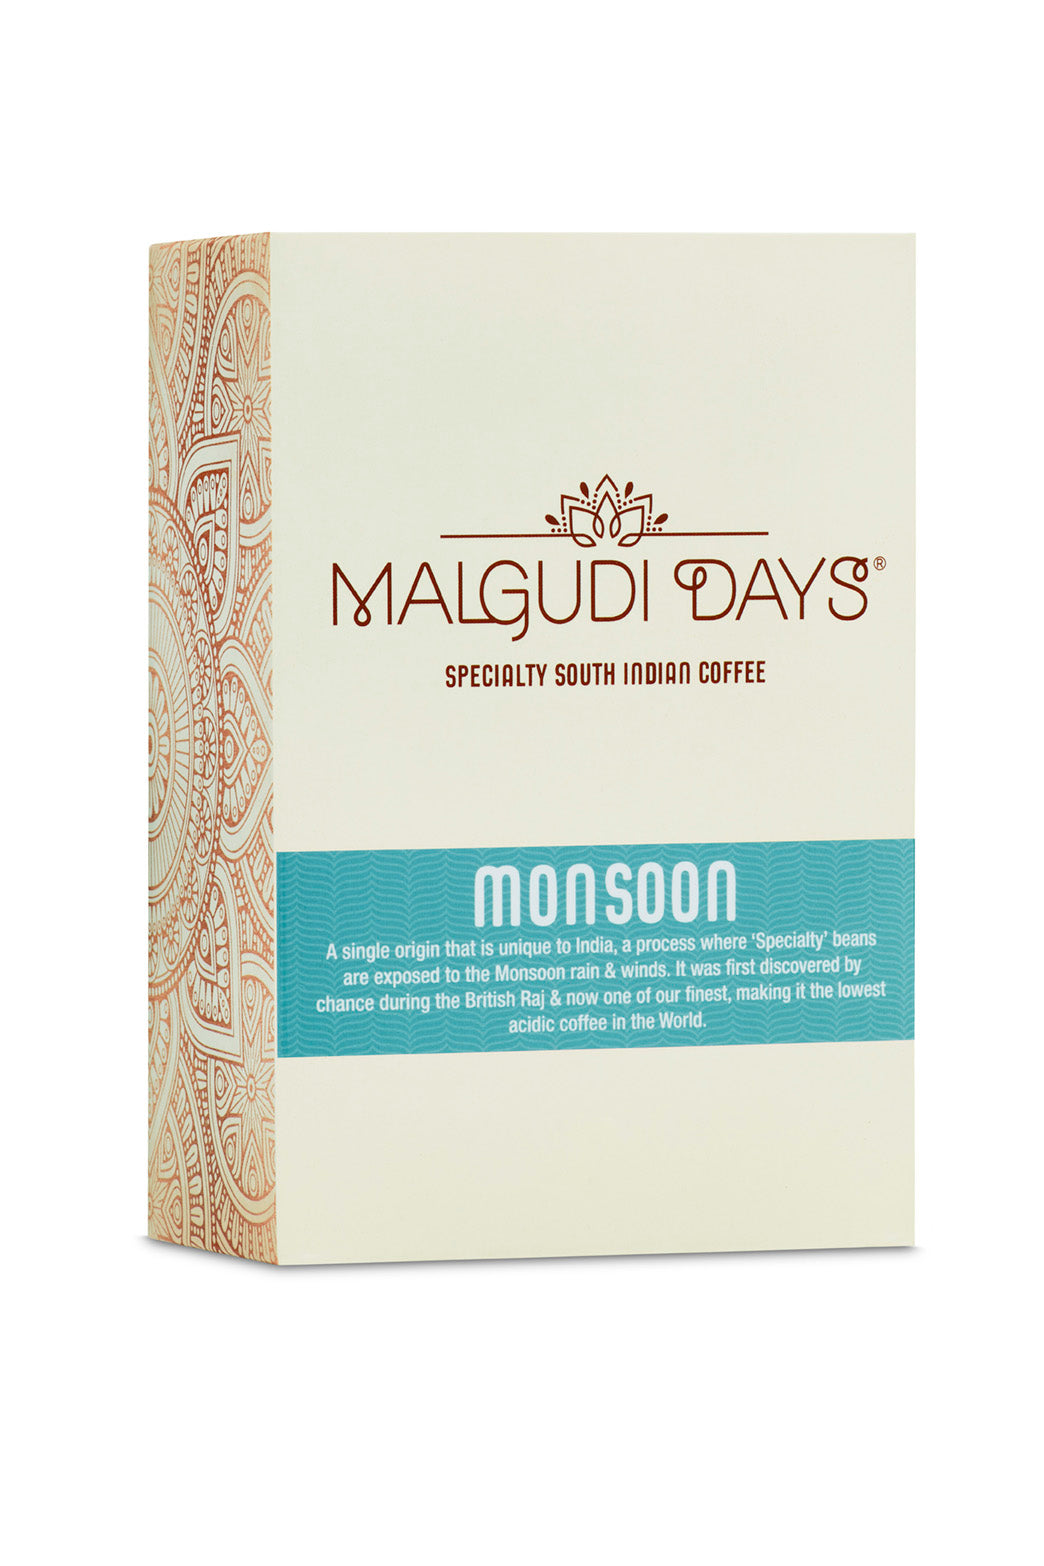 Monsoon - 225g - Malgudi Days